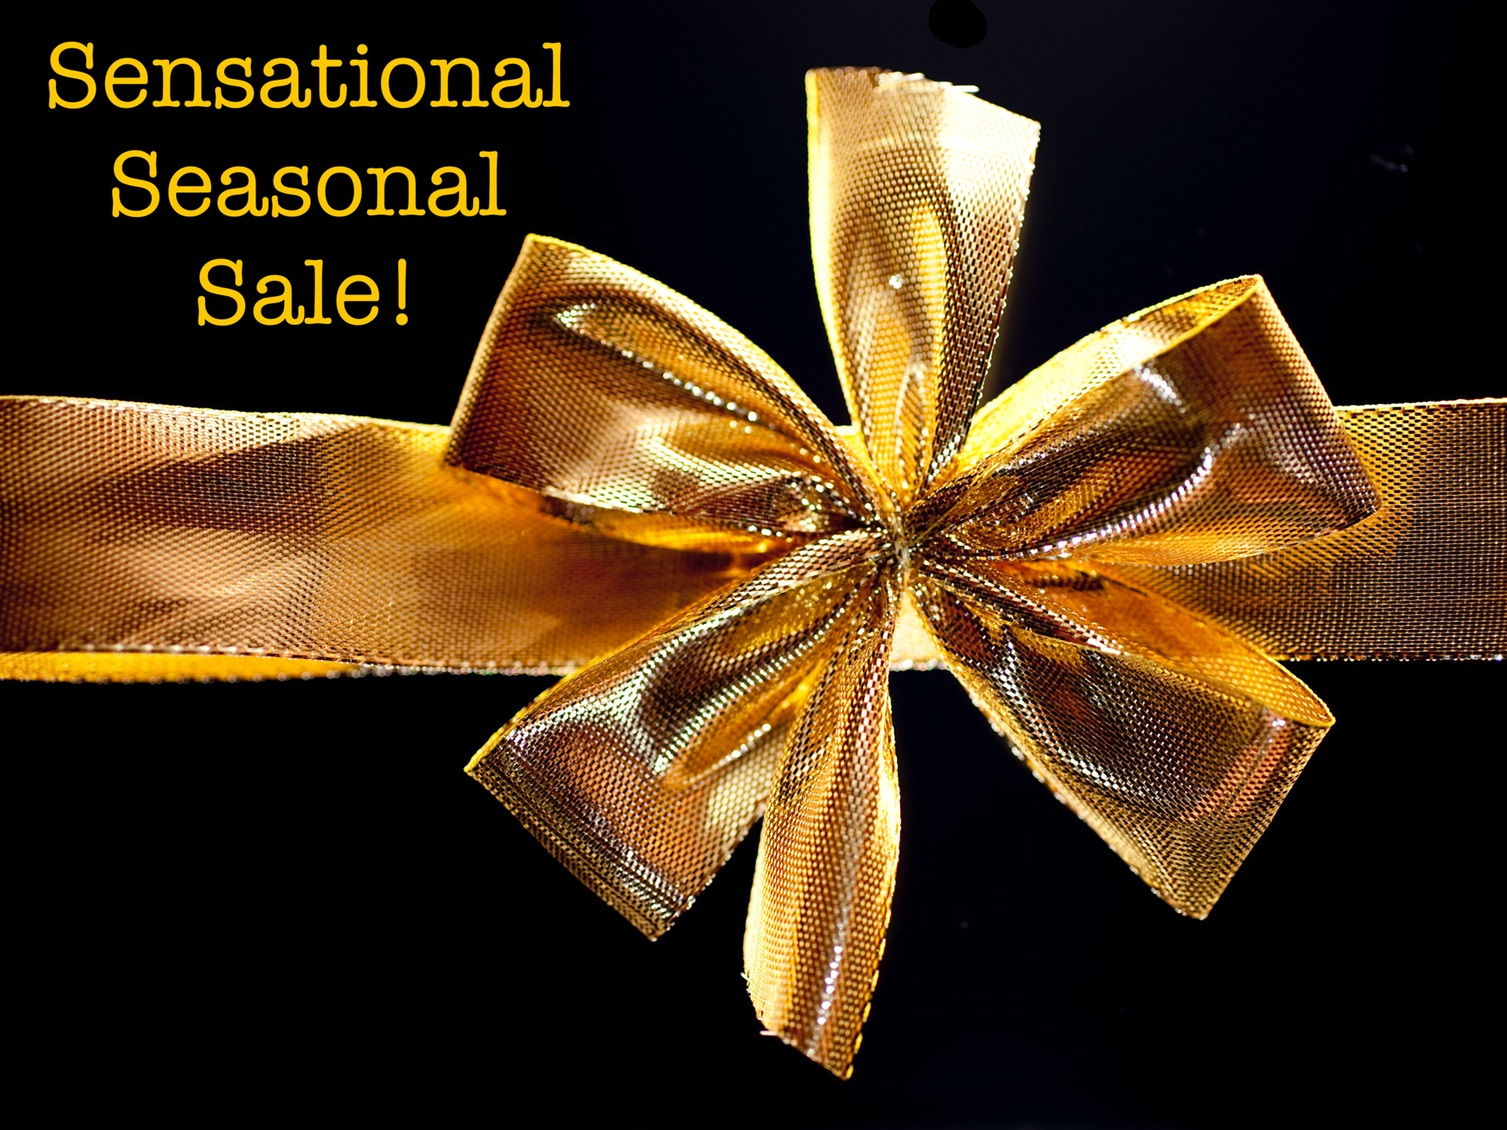 Sensational Seasonal Sale!